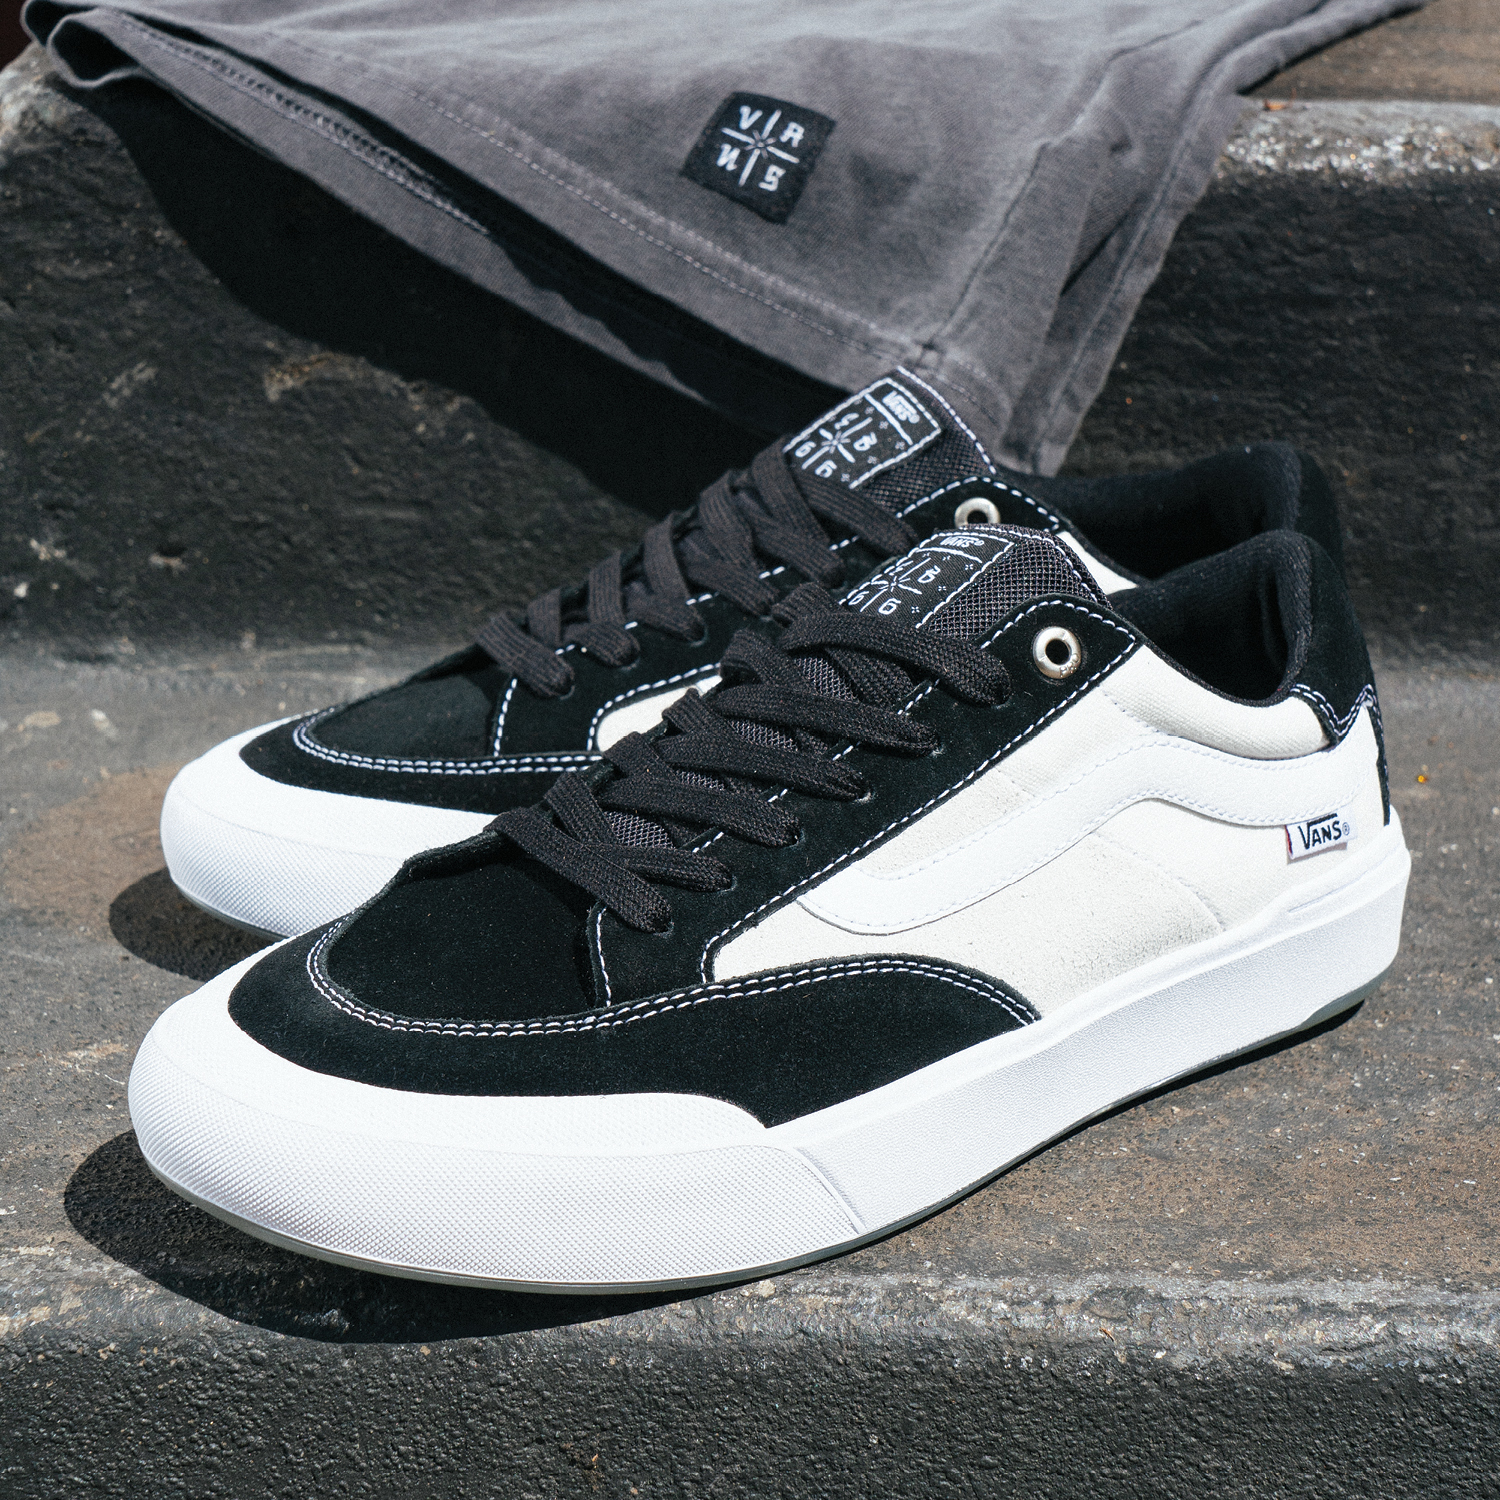 Photo Gallery of Article Vans Berle Pro. New signature model designed for body and soul skaters